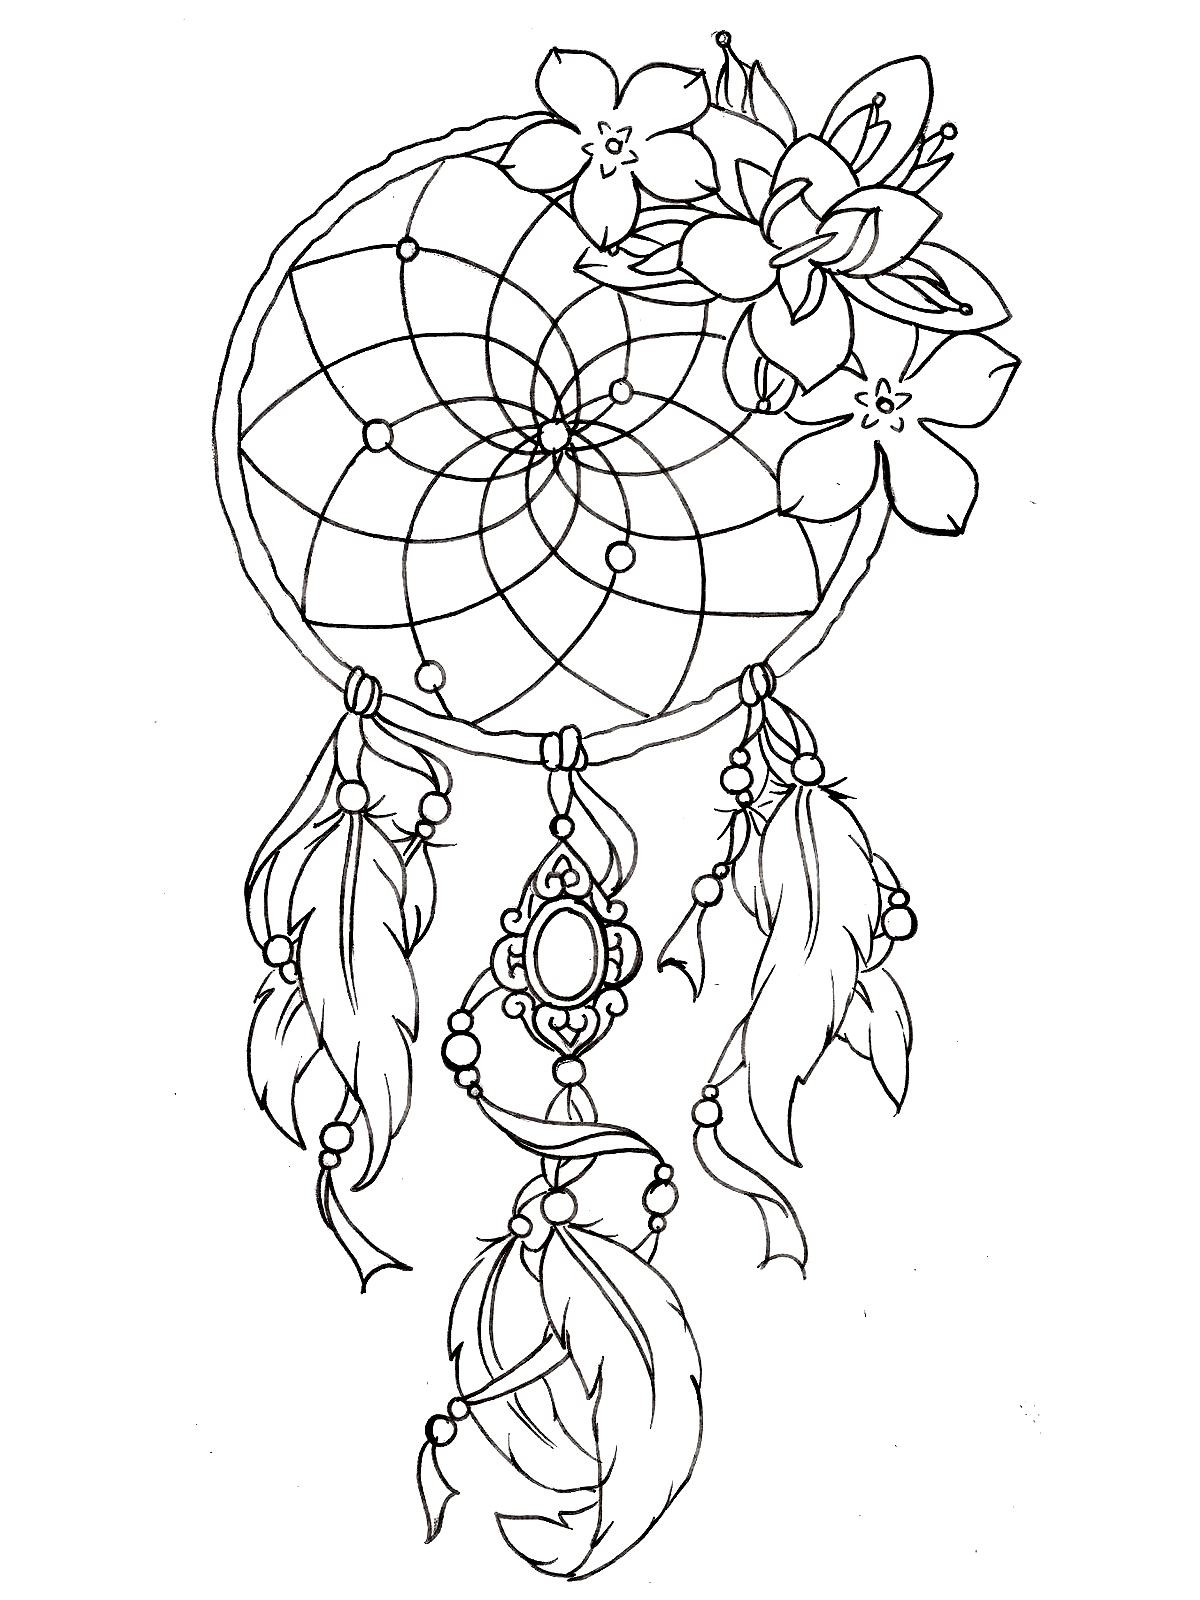 Tattoo Coloring Pages For Adults  Dreamcatcher tattoo designs Tattoos Adult Coloring Pages